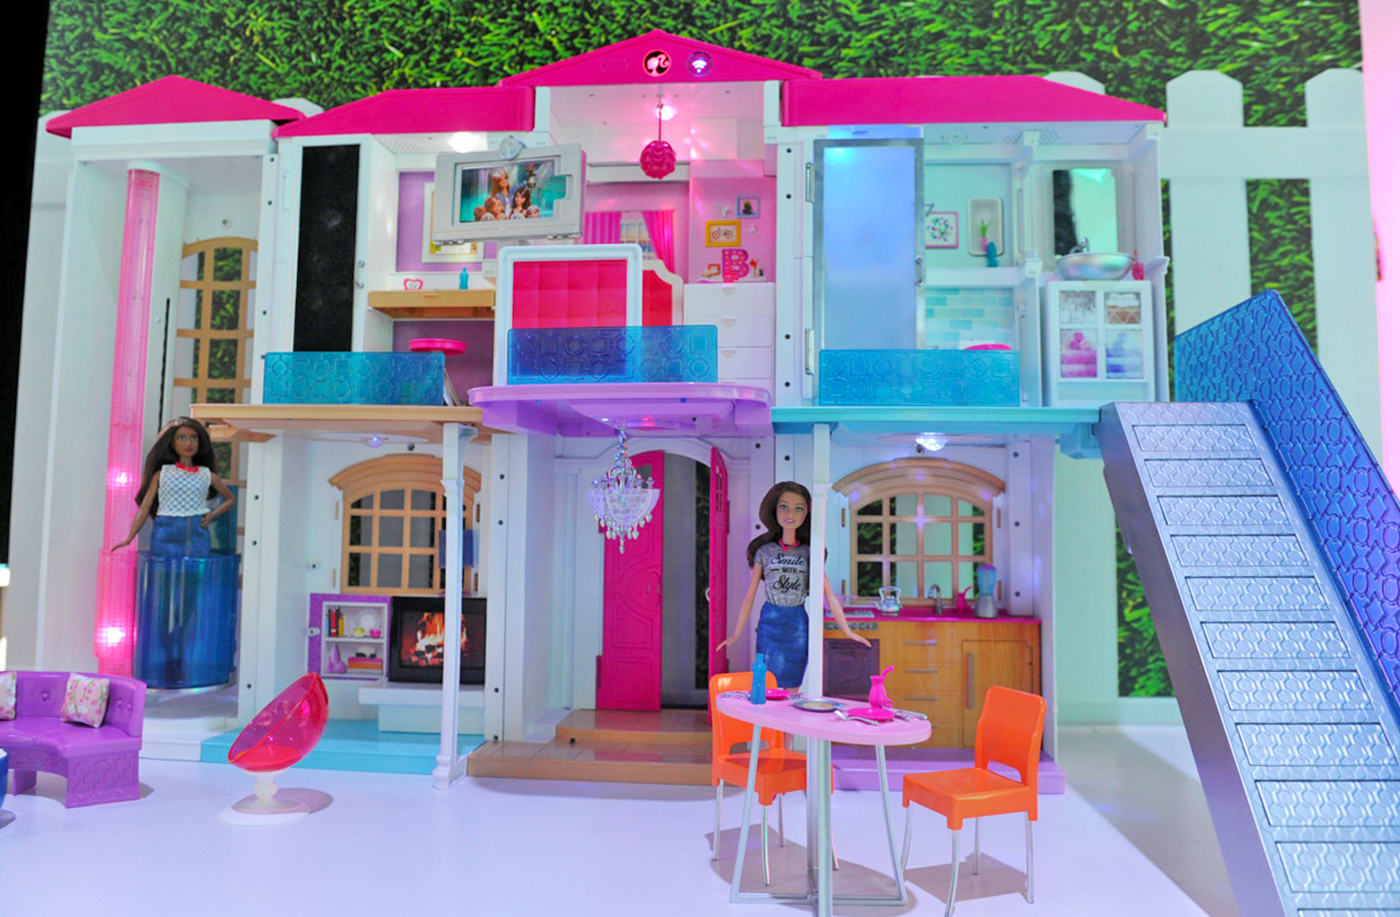 Barbie's new Dreamhouse goes full IoT with voice commands